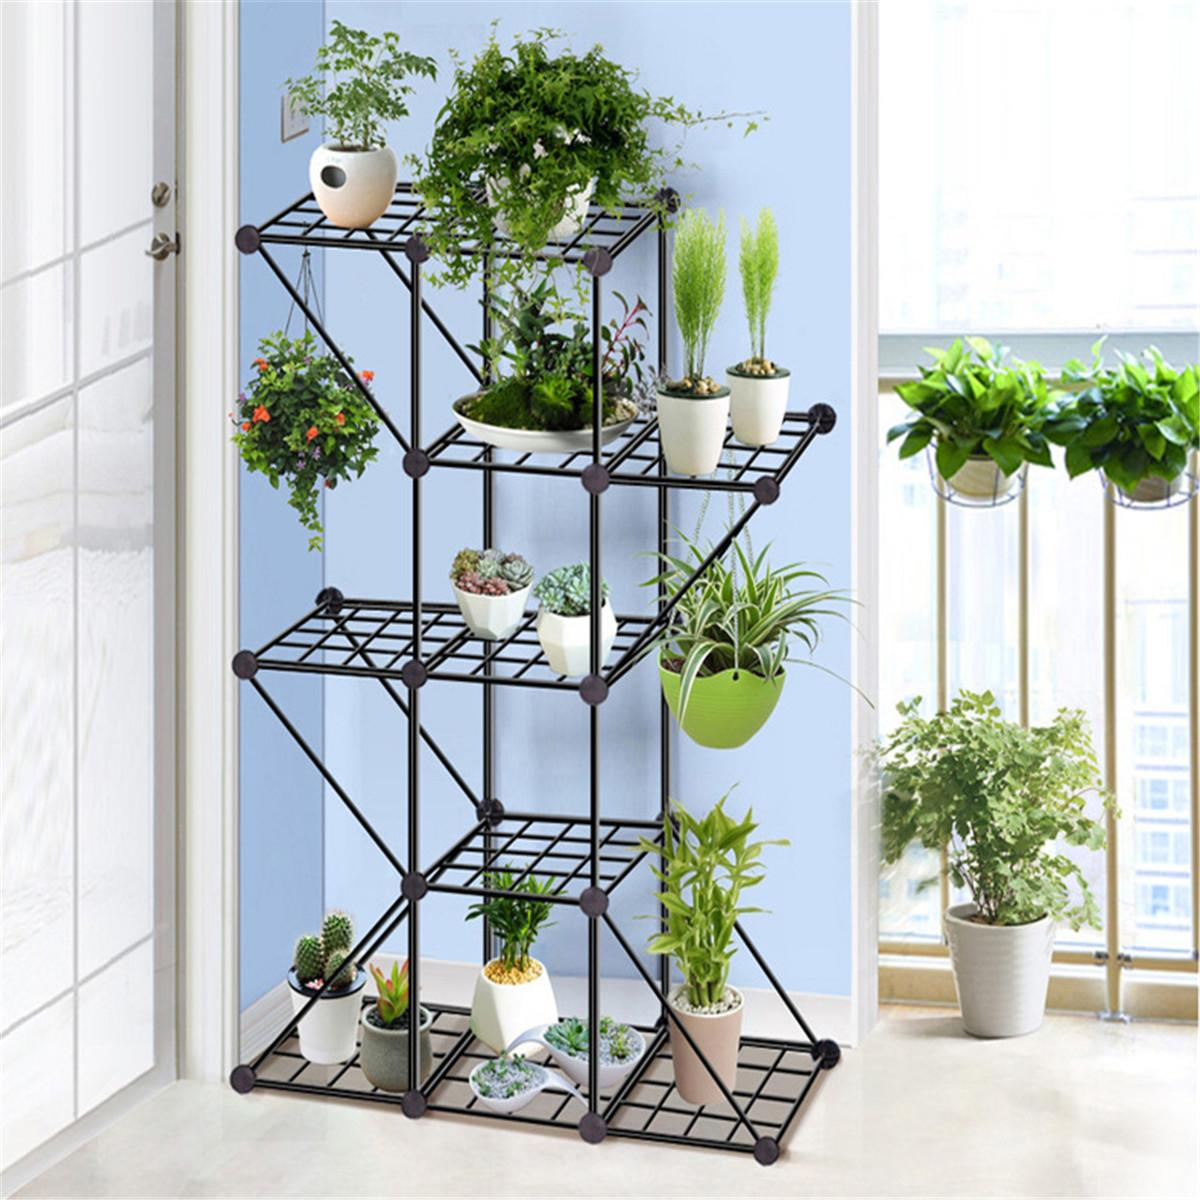 3/4 Layer Wrought Iron Balcony Living Room Interior Modern Decoration Floor-standing Flower Stand Storage Flower Pot Shelf